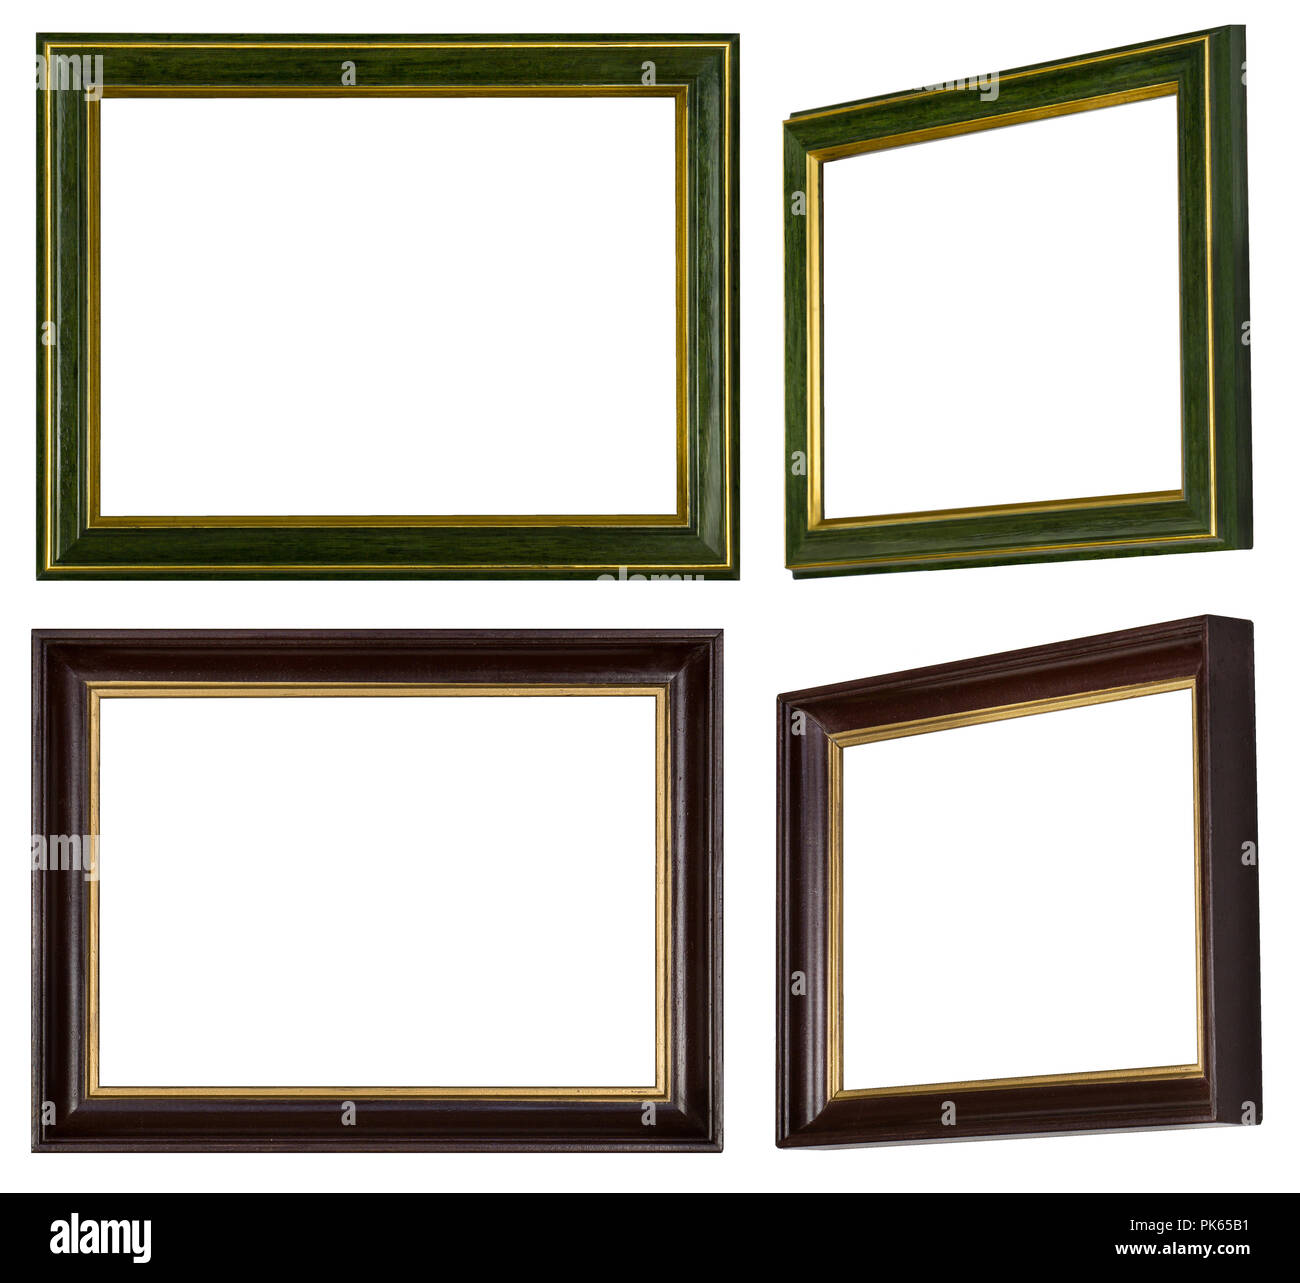 Two Green Gold And Brown Gold Picture Frames Made Of Wood Stock